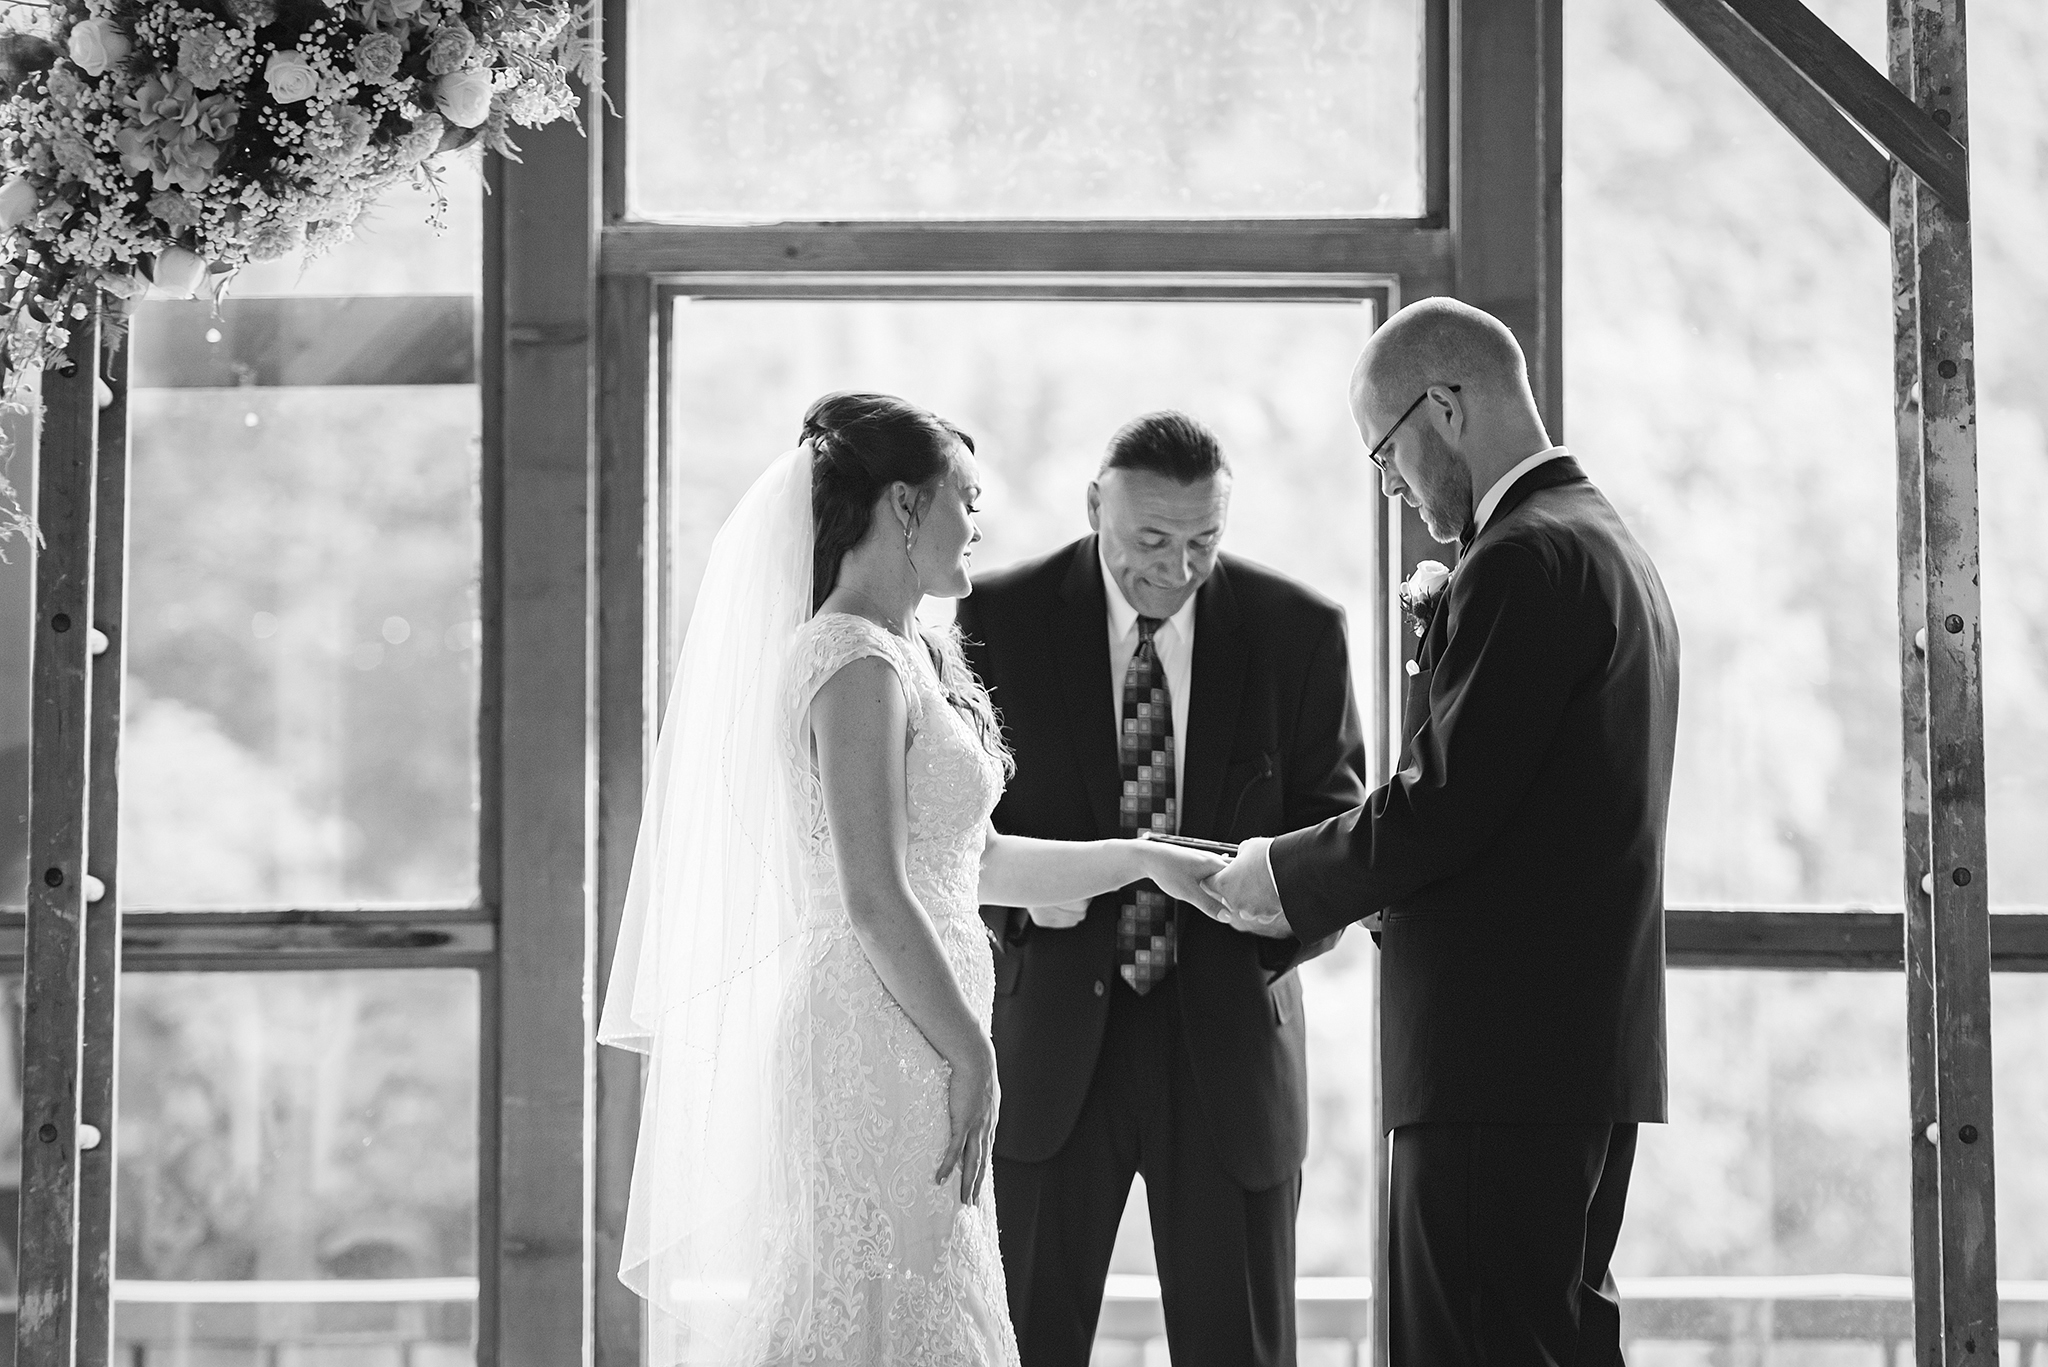 Lindsay-Adkins-Photography-Michigan-Wedding-Photographer-Sauk-Valley-Brooklyn-Michigan30